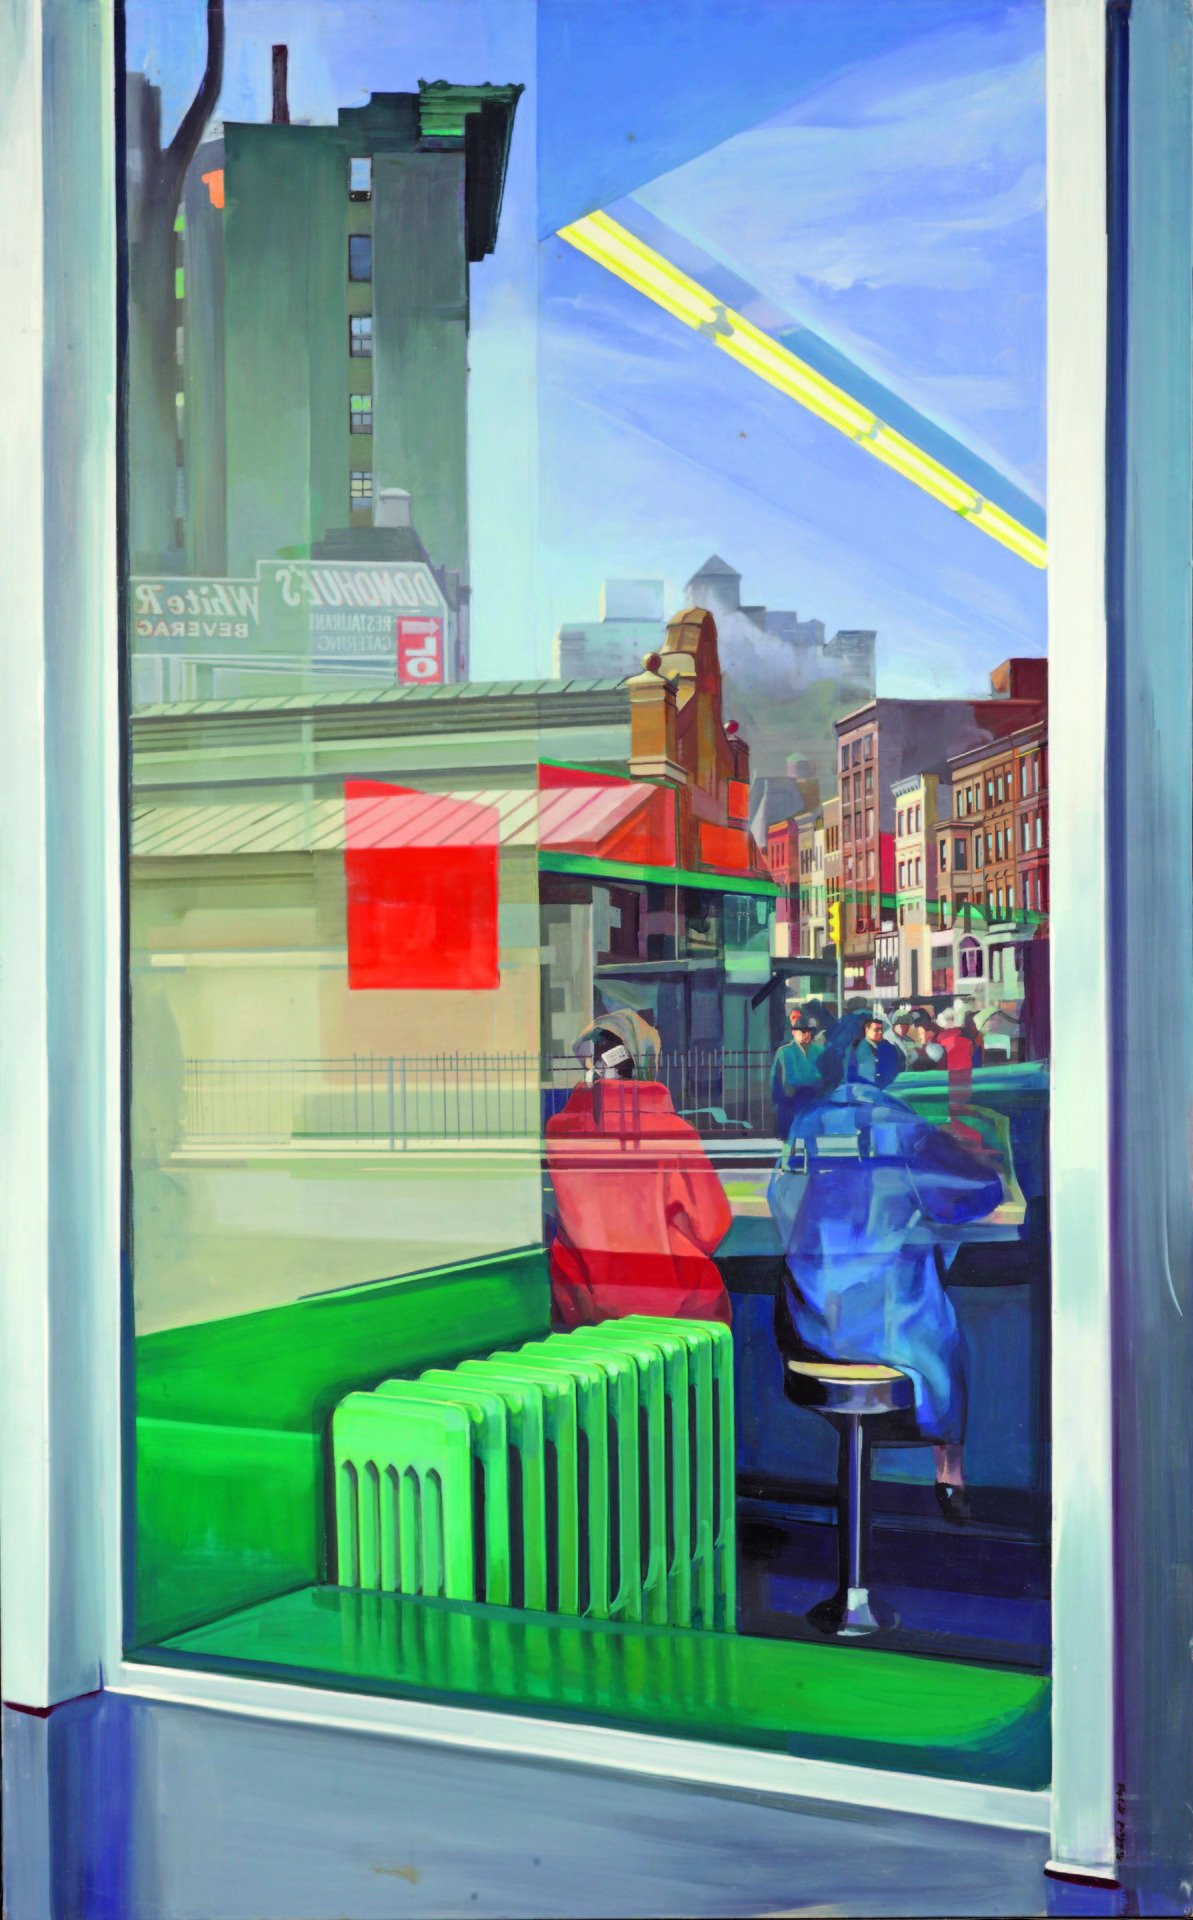 Donohue's Richard Estes, 1967 Oil on masonite | 122.5 x 76.5 centimetres via Amin Jaffer's pick, Adbuzzzz Section of The DAWN National Weekend Advertiser